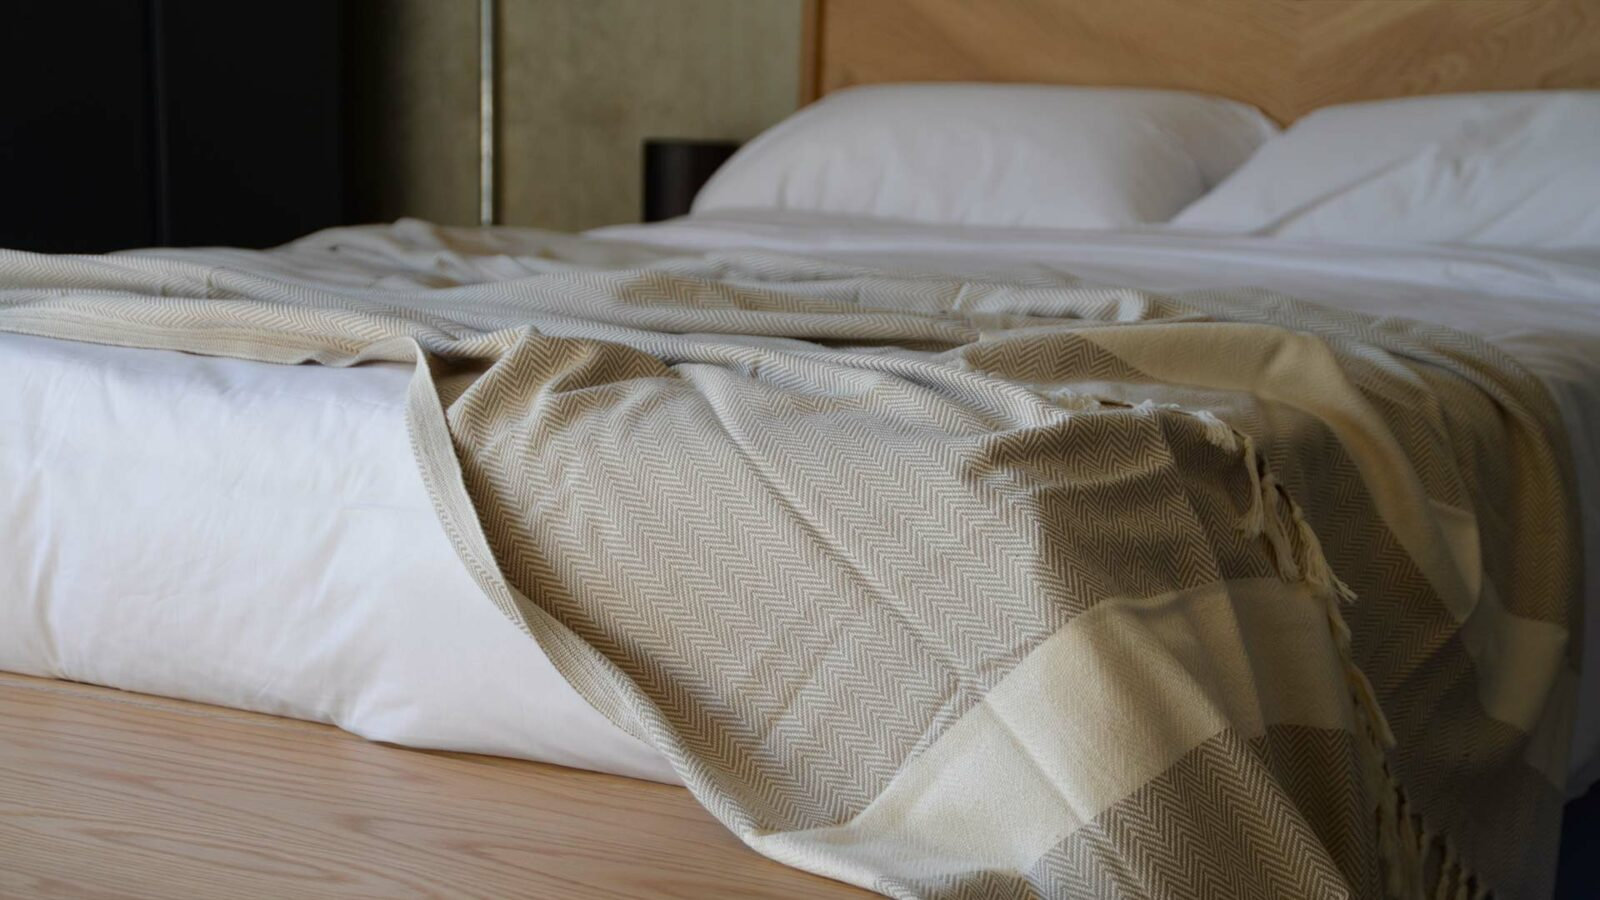 OEKO TEX certified woven cotton blanket with herringbone weave in taupe and cream